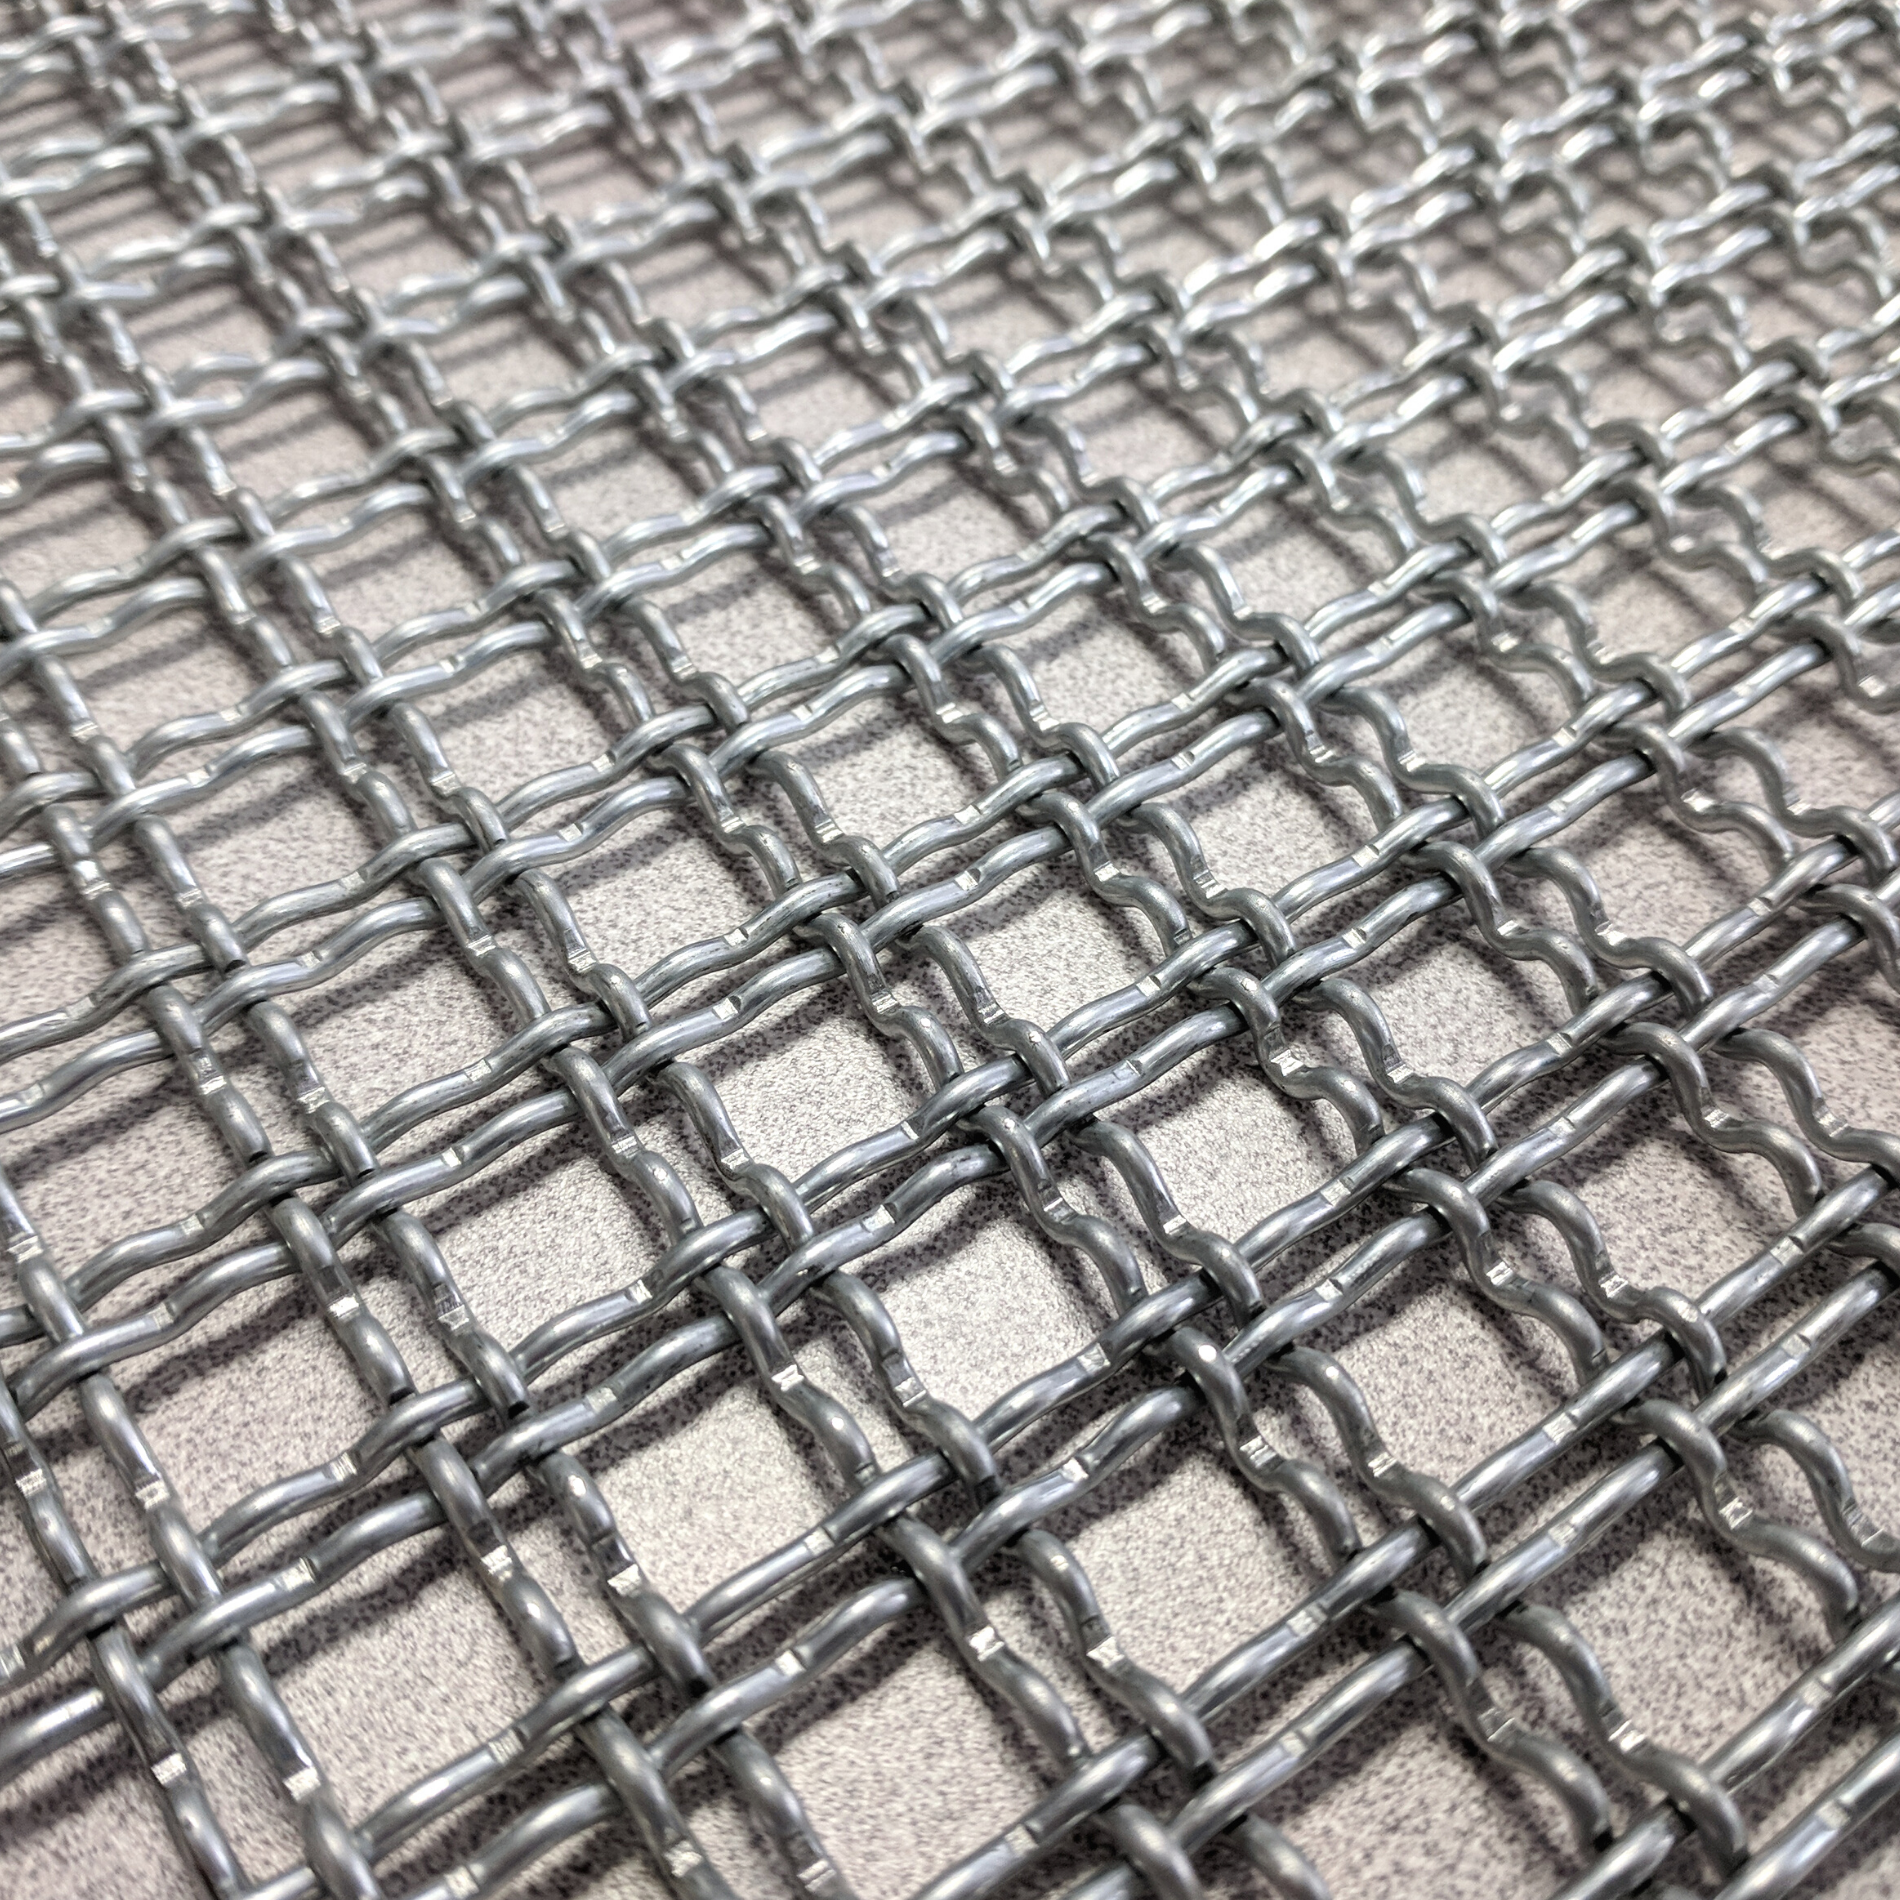 Stainless Steel Decorative Mesh Close Up